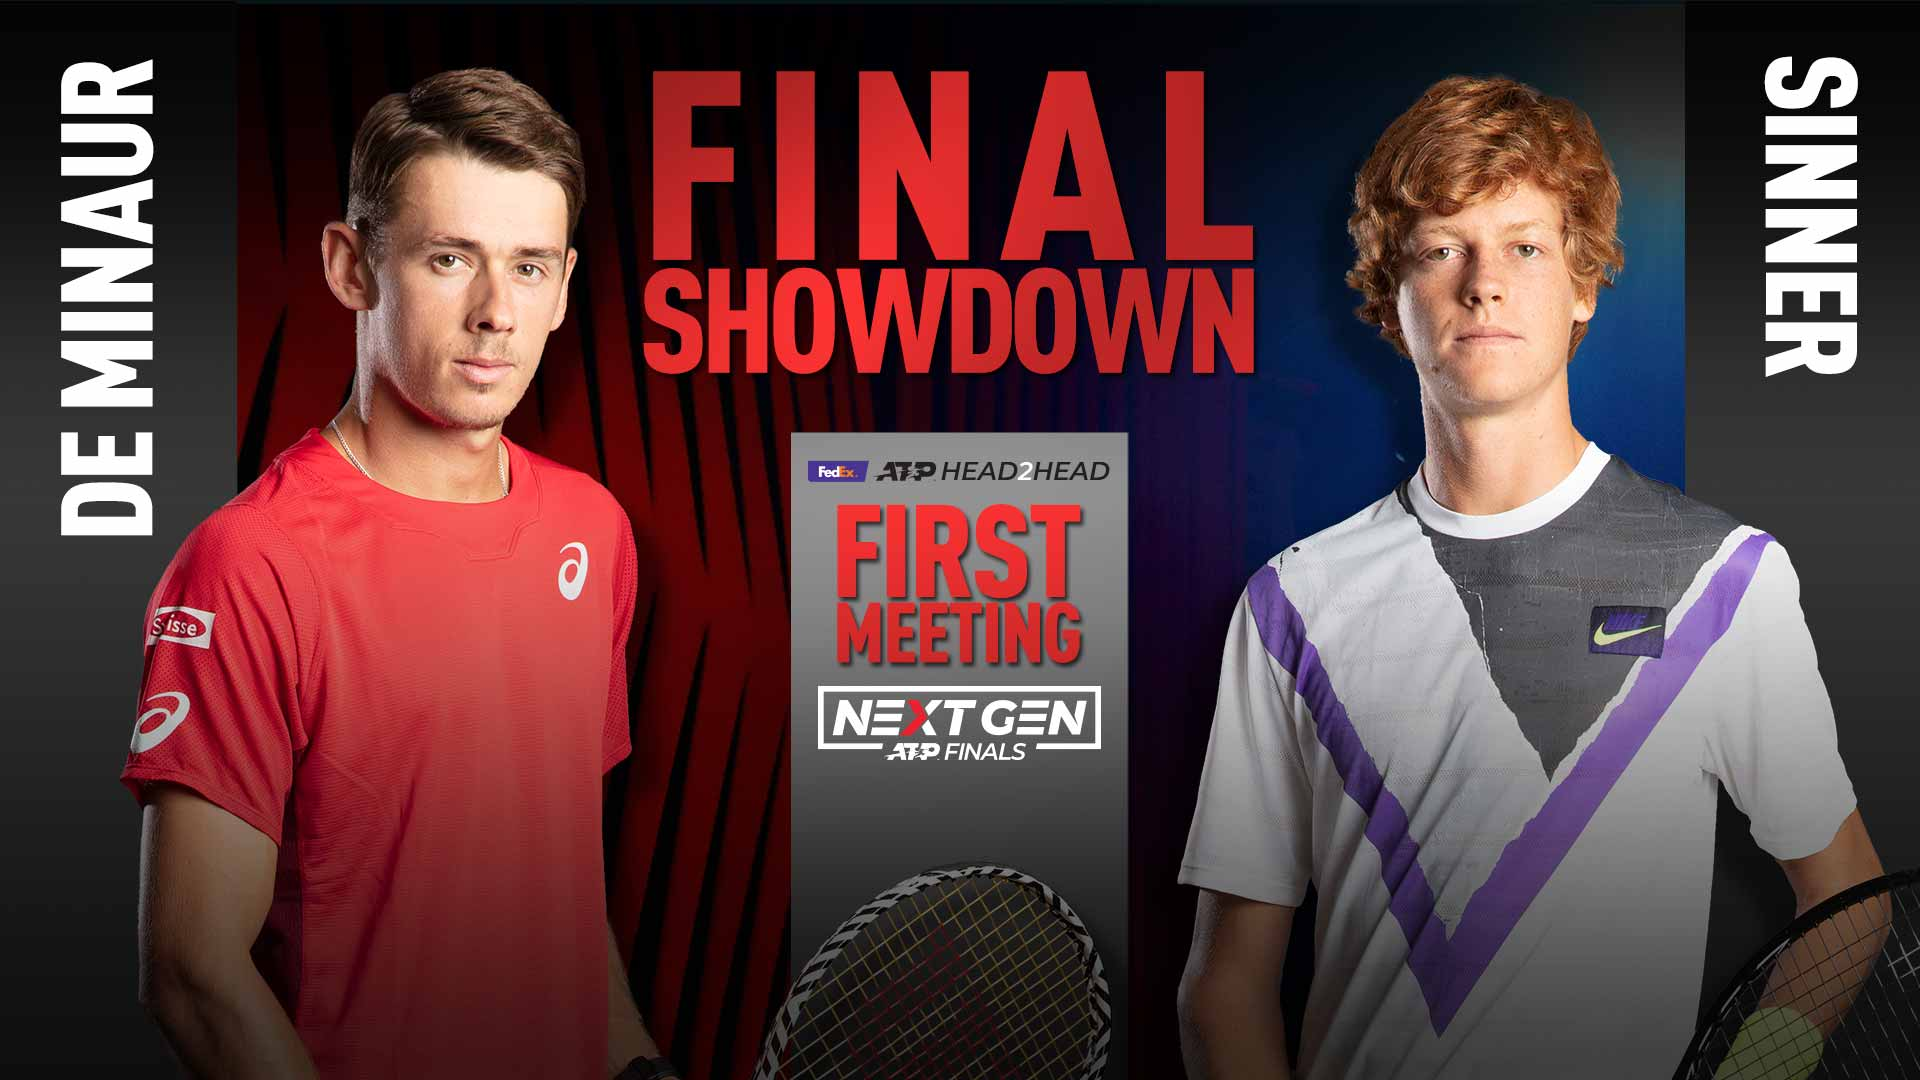 Next Gen ATP Finals. Синнер и де Минор поспорят за титул чемпиона